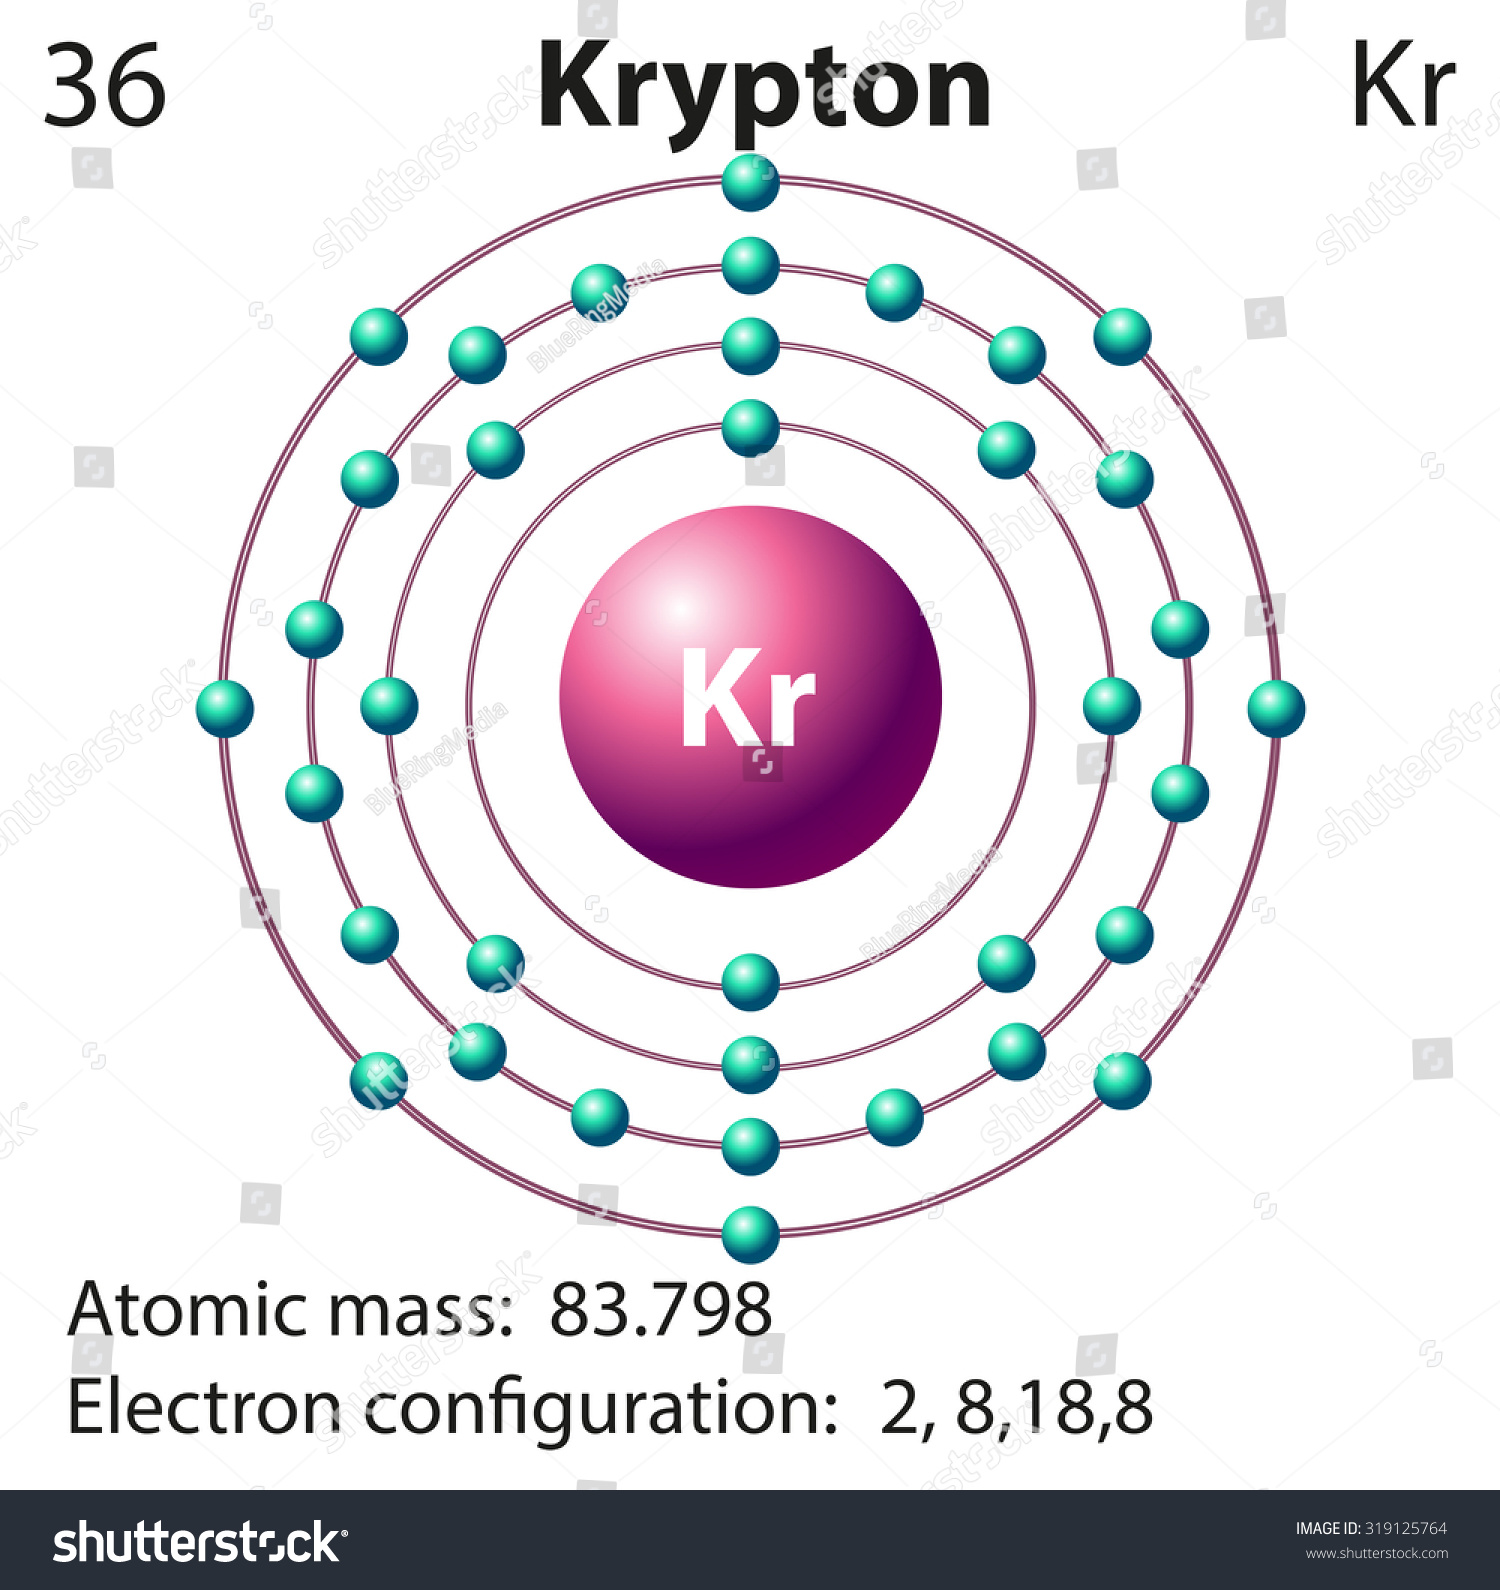 Krypton Element Diagram Trusted Wiring Diagrams Atoms Electron Configurations Of Elements The Atom Complete U2022 Hydrogen